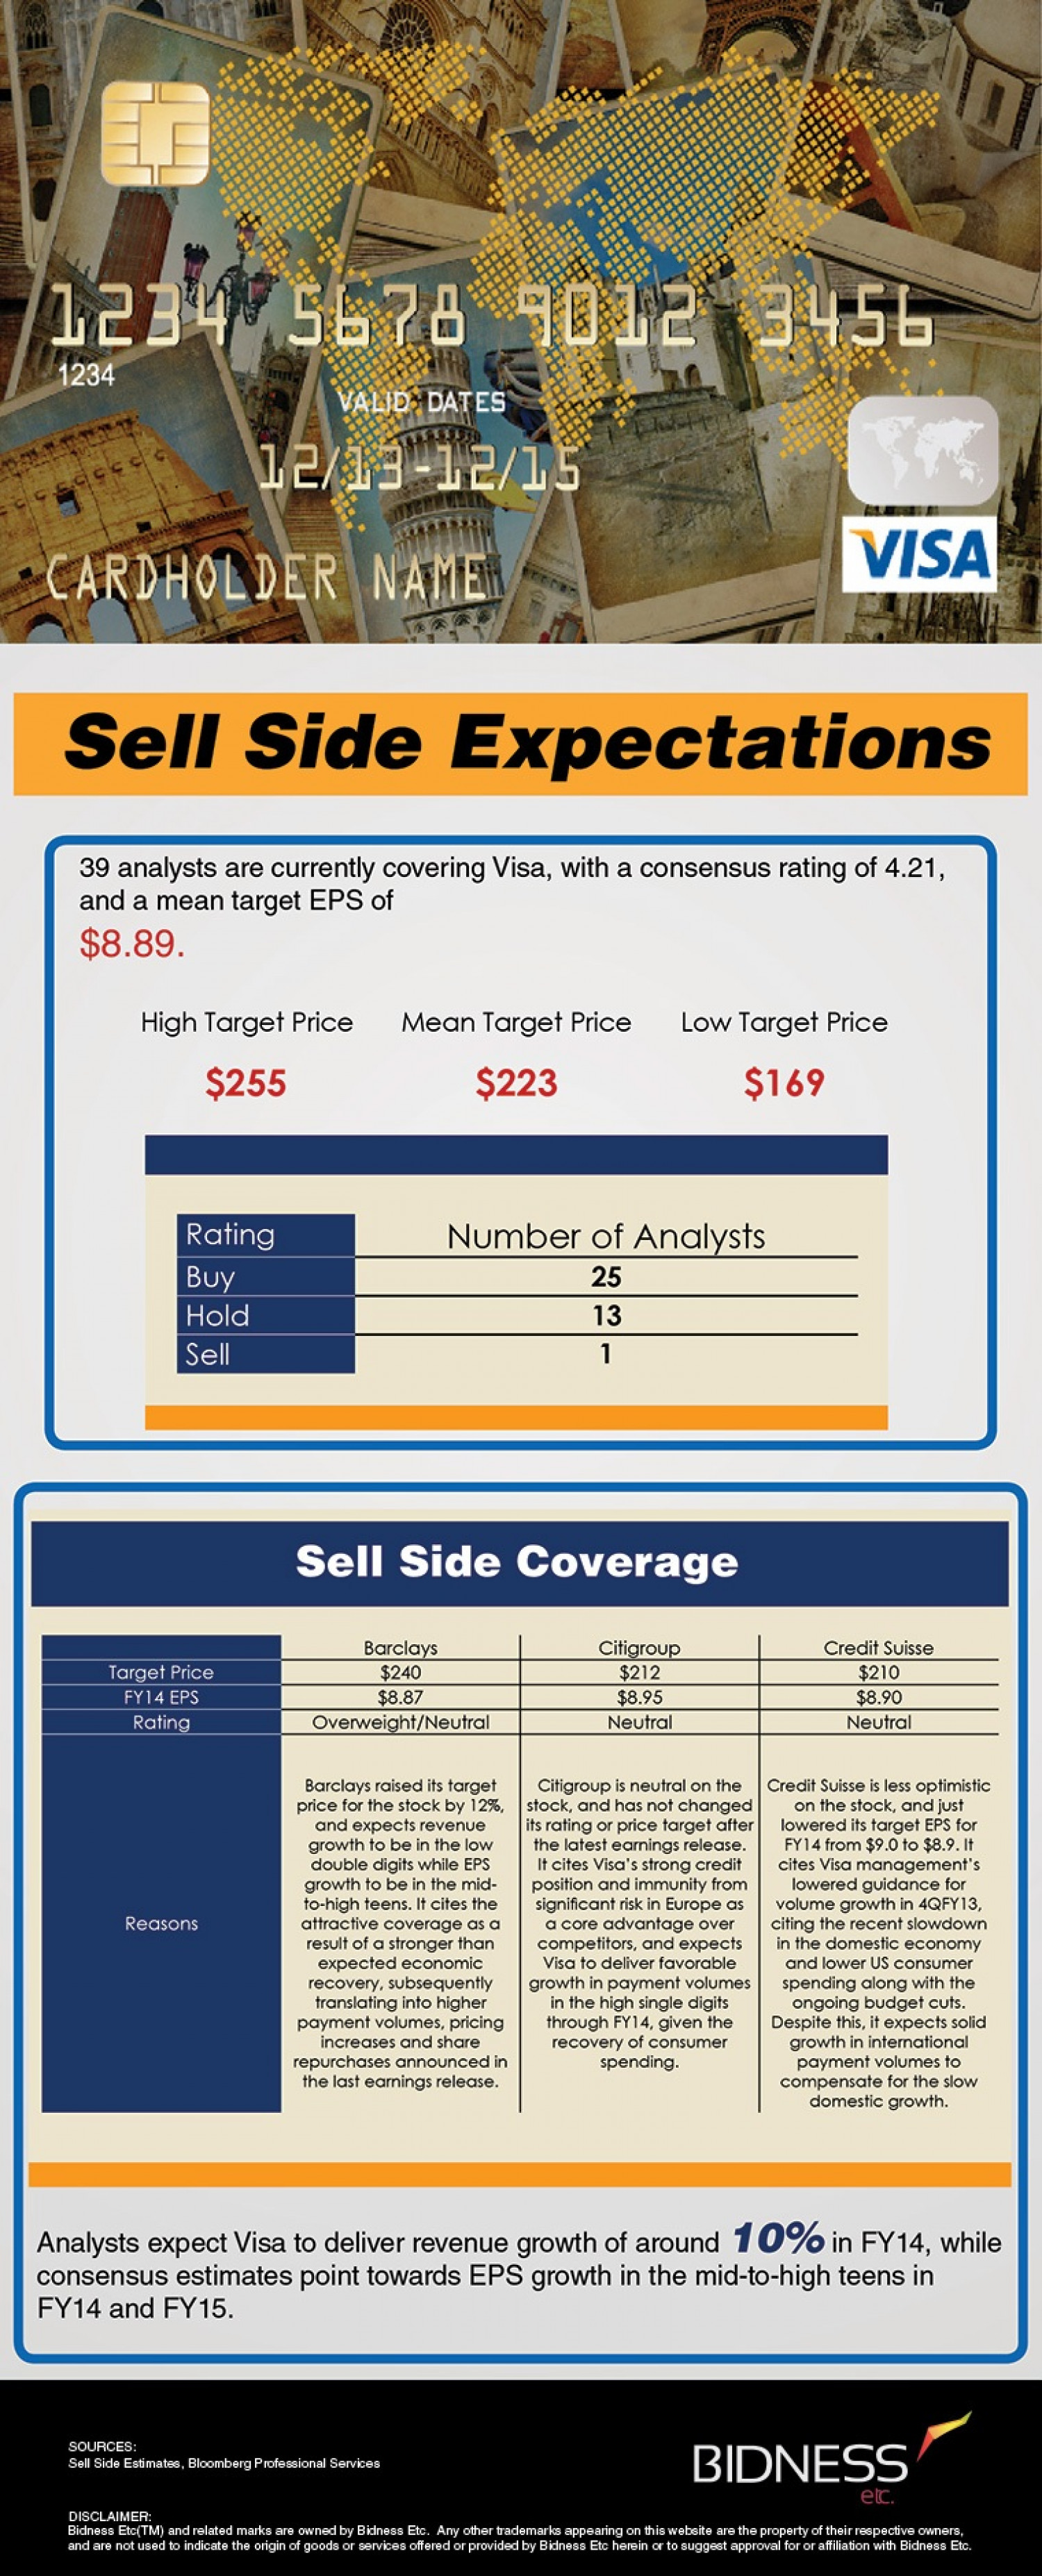 Visa (V) Sell-Side Expectations Infographic